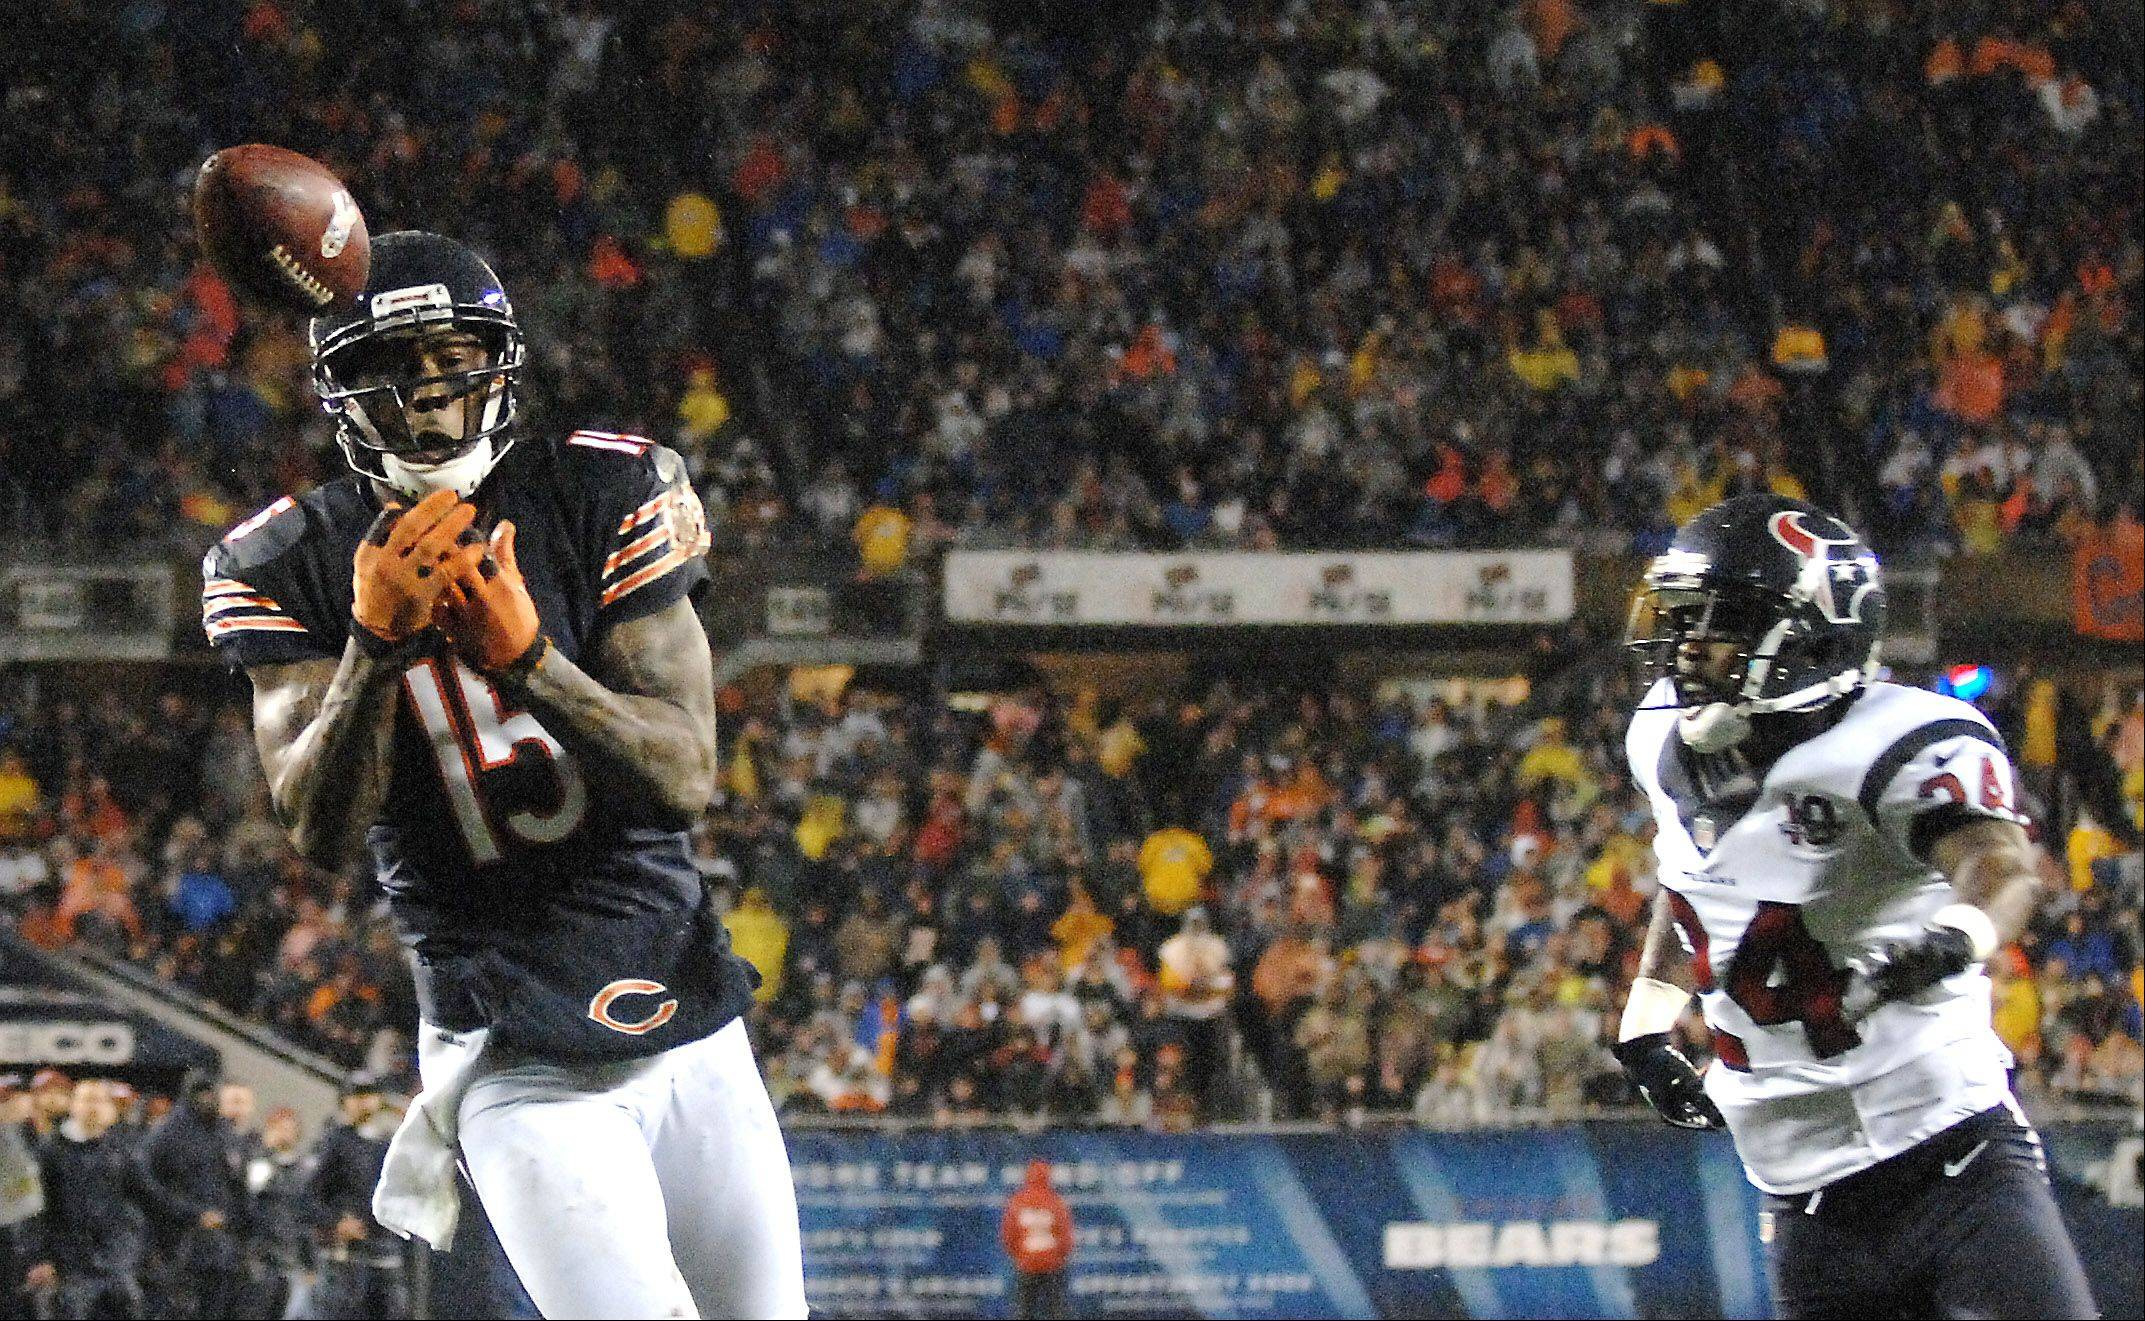 Chicago Bears wide receiver Brandon Marshall (15) drops what appears to be a sure touchdown during the second quarter after beating Houston Texans cornerback Johnathan Joseph (24) downfield during Sunday's game.